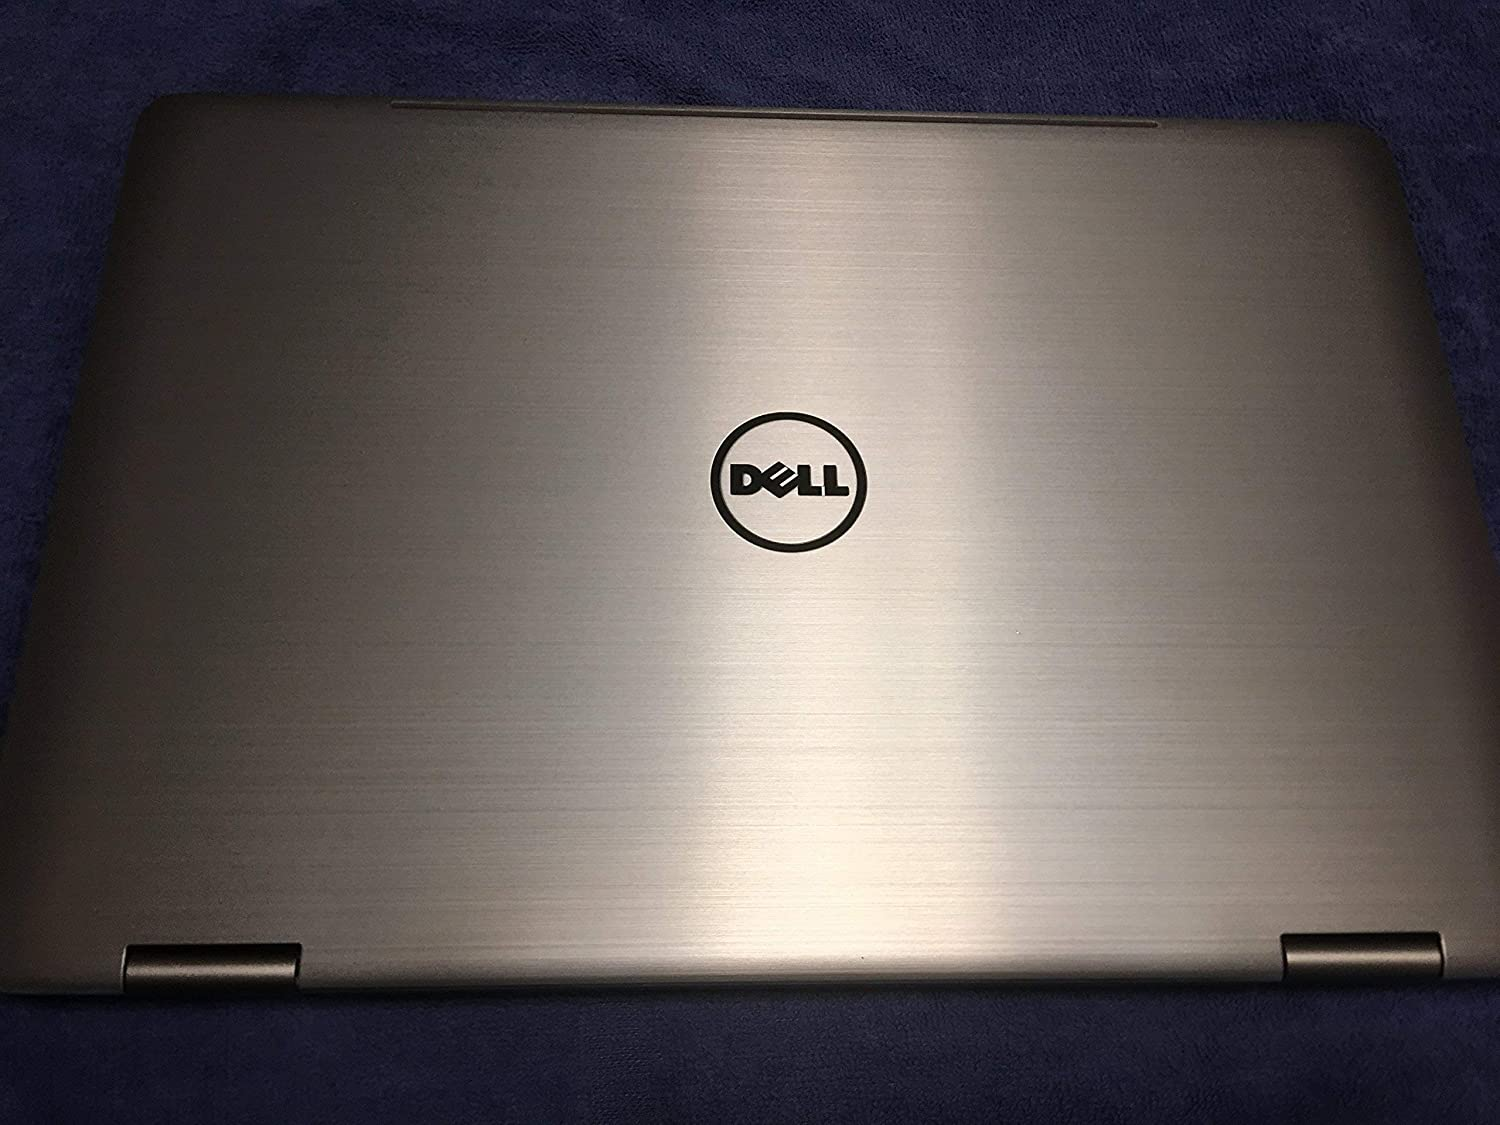 Dell - Inspiron 2-in-1 17.3in Touch-Screen Laptop - Intel Core i7 - 12GB Memory - NVIDIA GeForce 940MX - 1TB Hard Drive - Gray (Renewed)